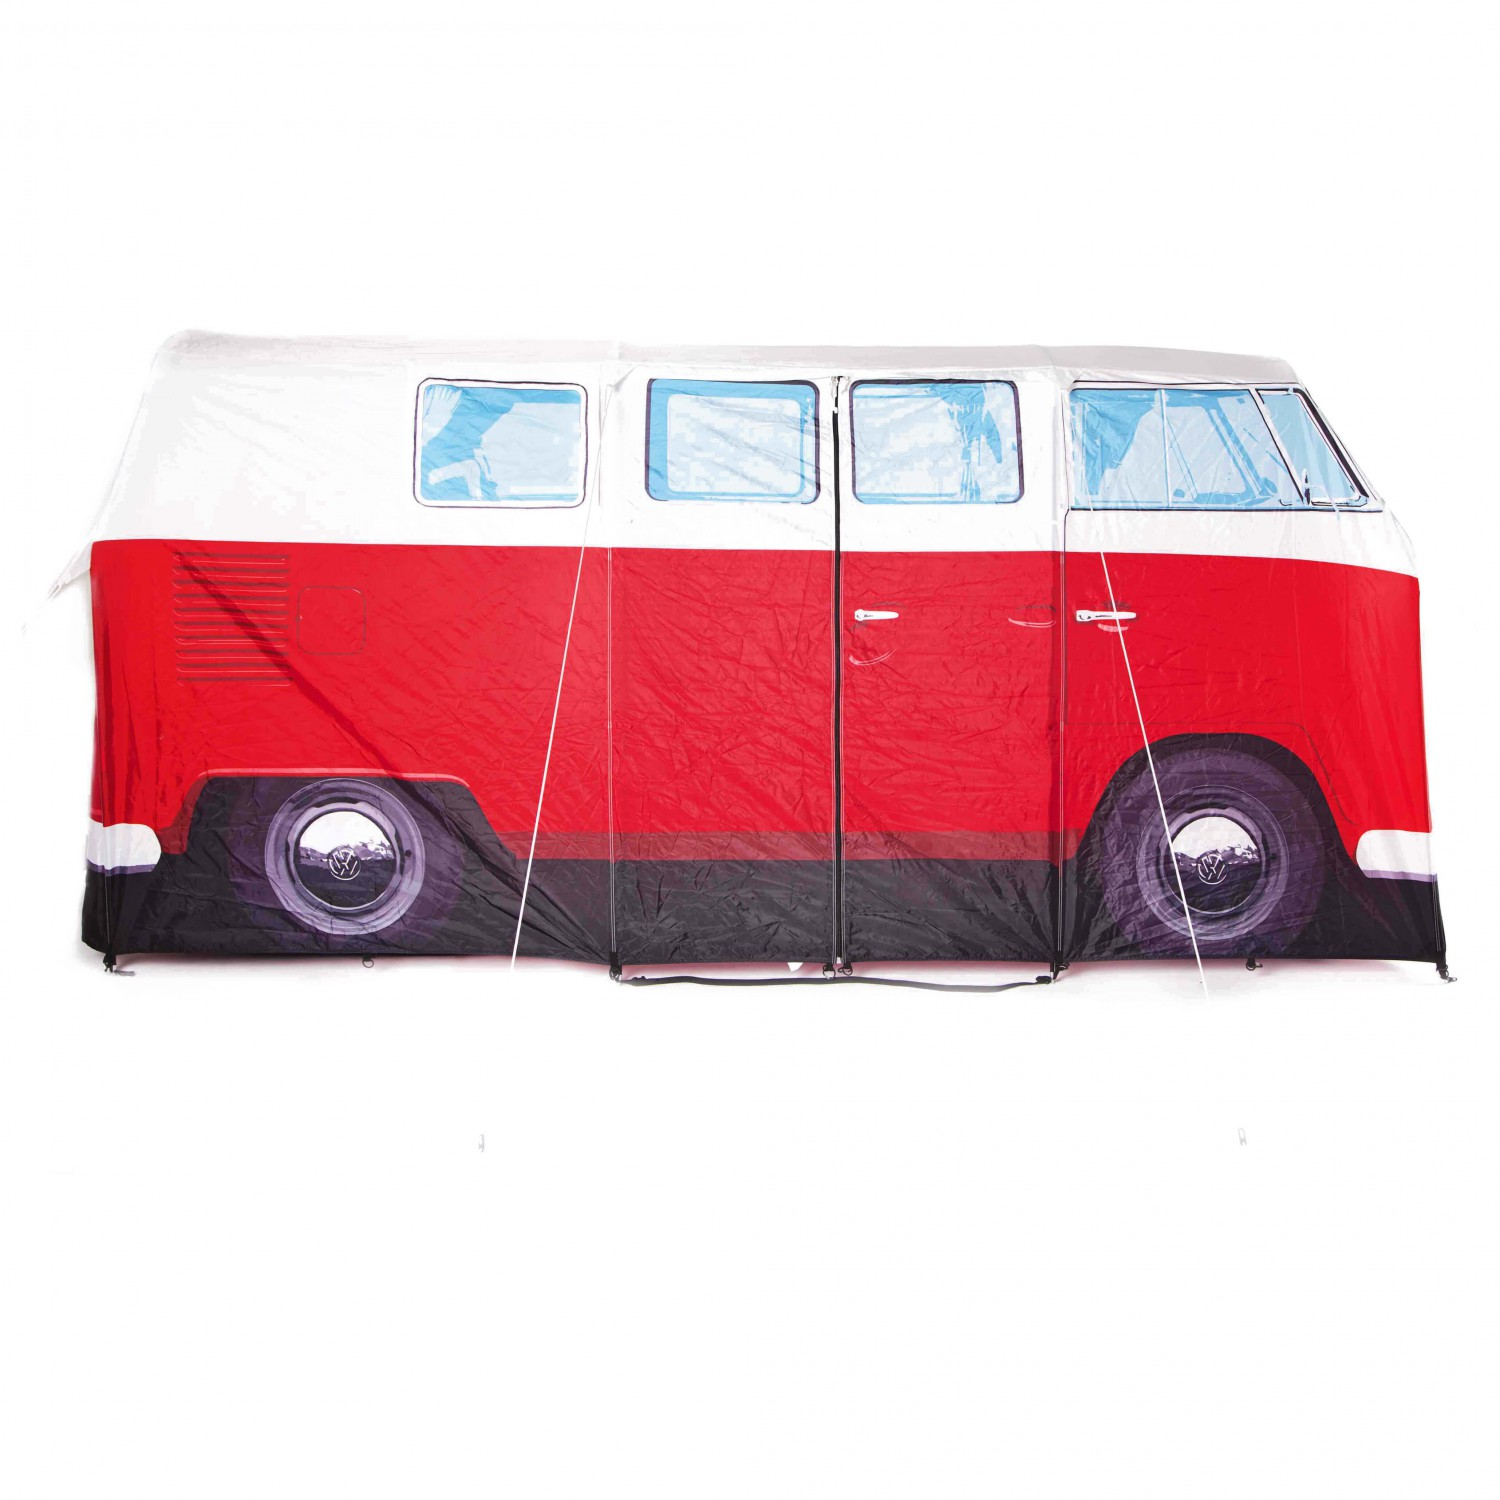 ... The Monster Factory - VW C&er Van Tent Air - Bus tent ...  sc 1 st  Alpinetrek & The Monster Factory VW Camper Van Tent Air - Bus Tent | Free UK ...